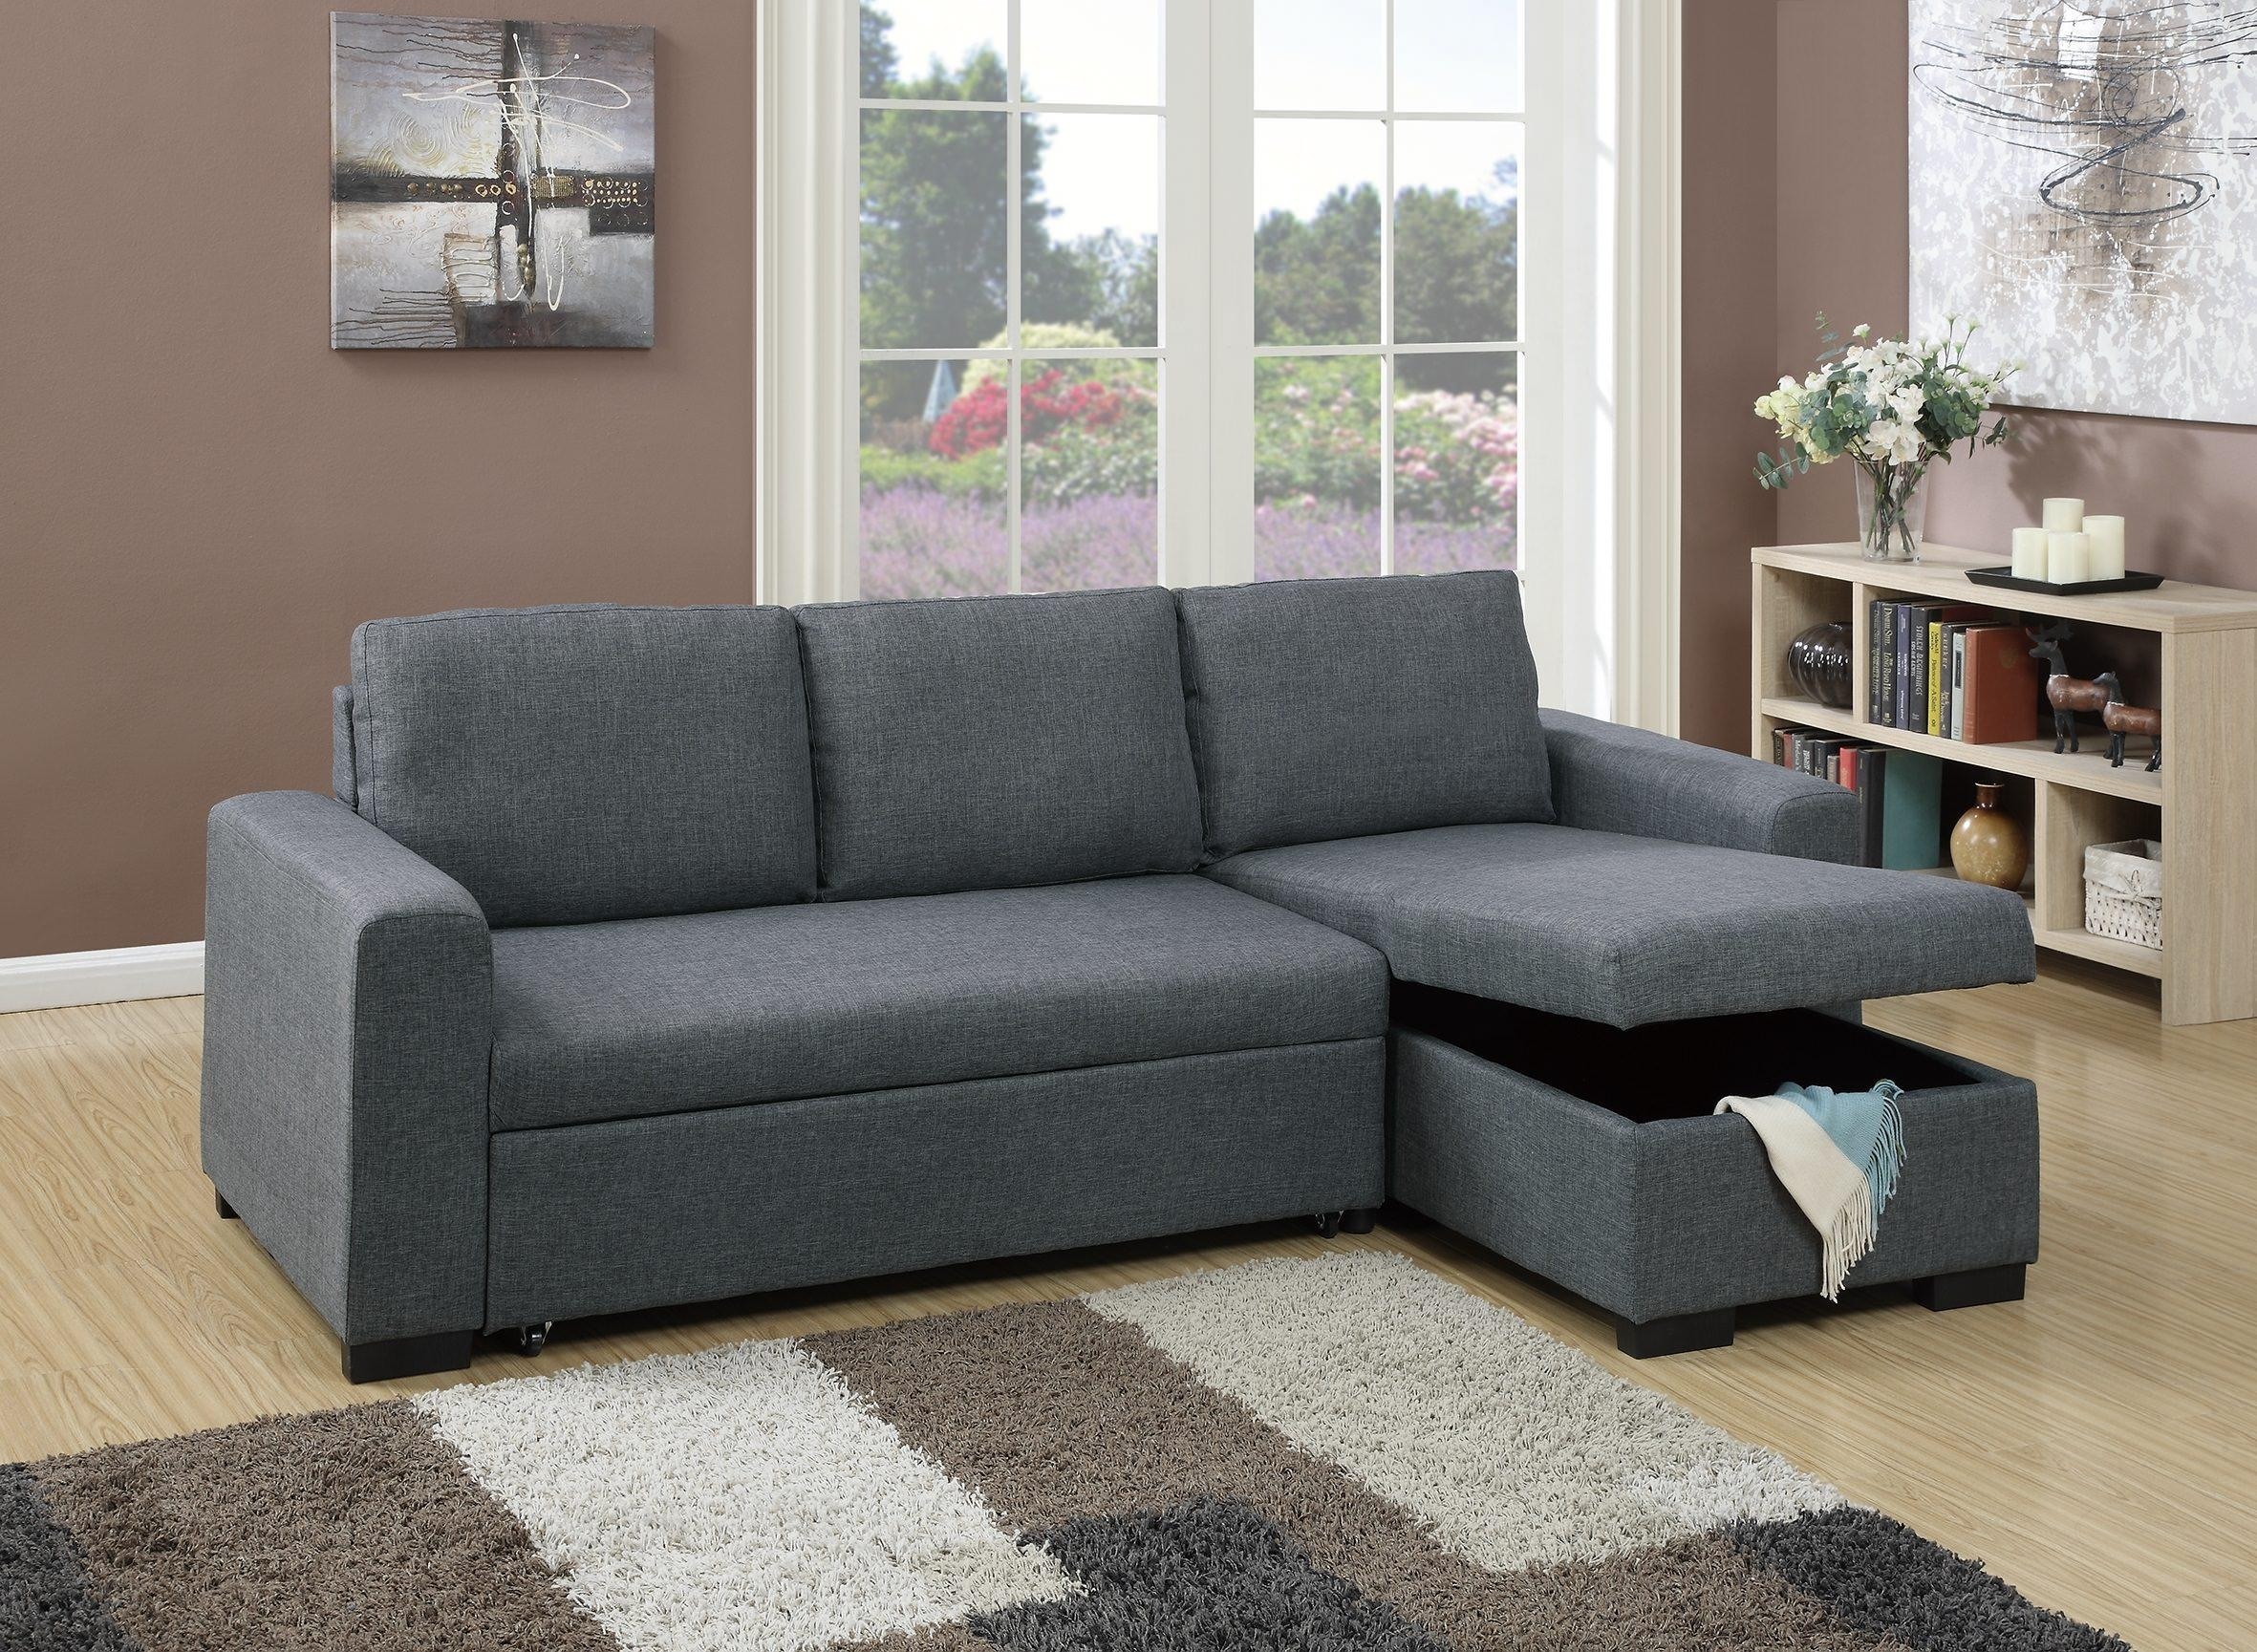 F6931 Blue Gray Convertible Sectional Sofapoundex In Convertible Sectional Sofas (View 5 of 15)